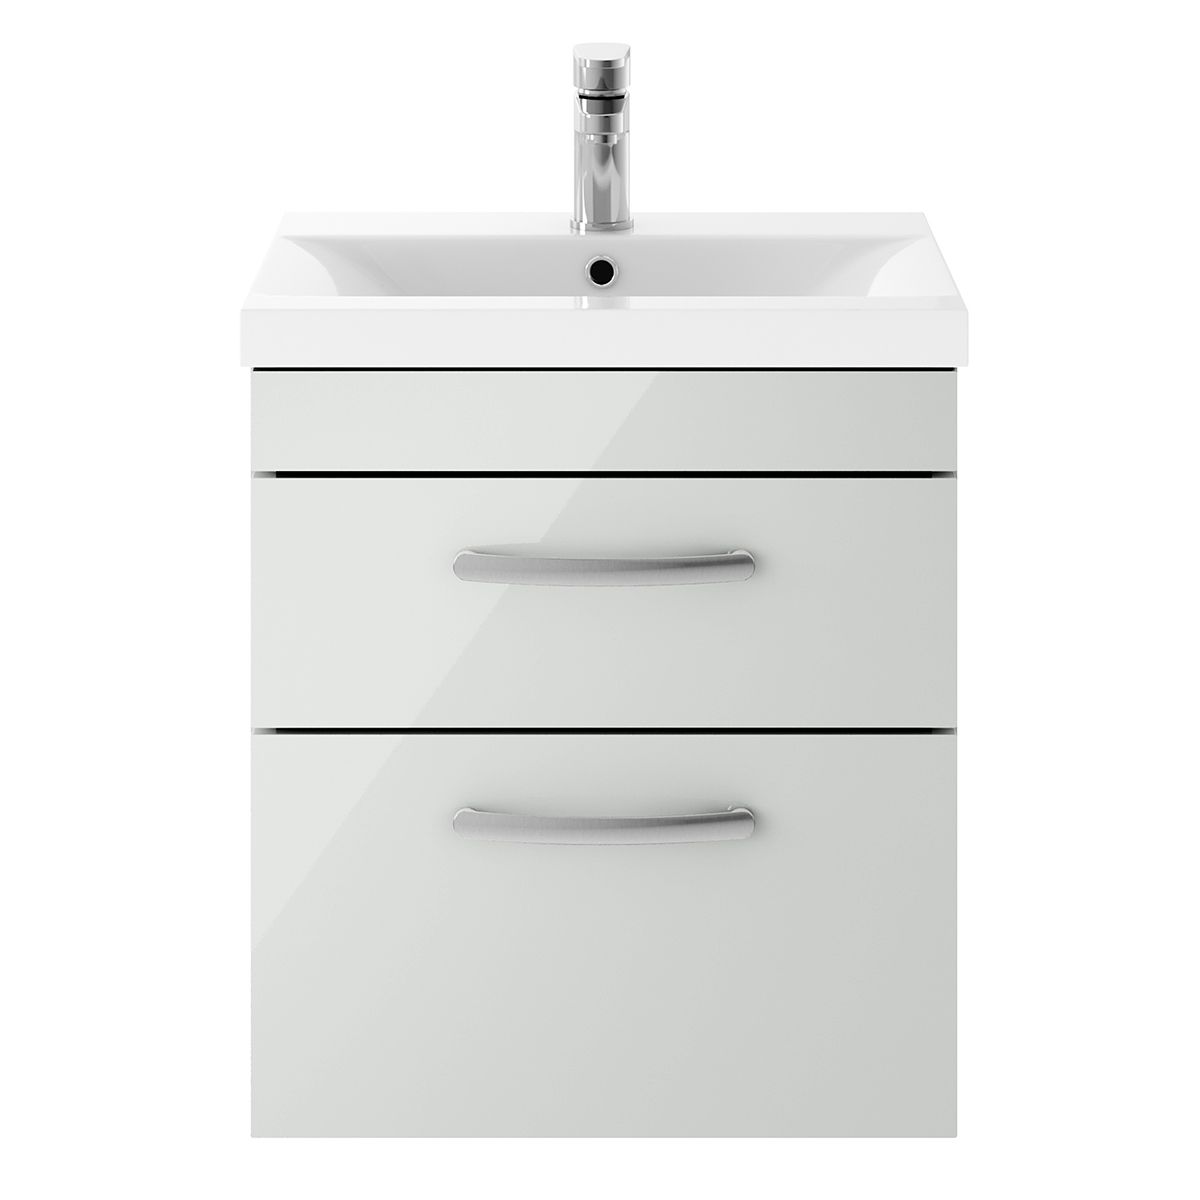 Nuie Athena Gloss Grey Mist 2 Drawer Wall Hung Unit 500mm with Med Edge Basin